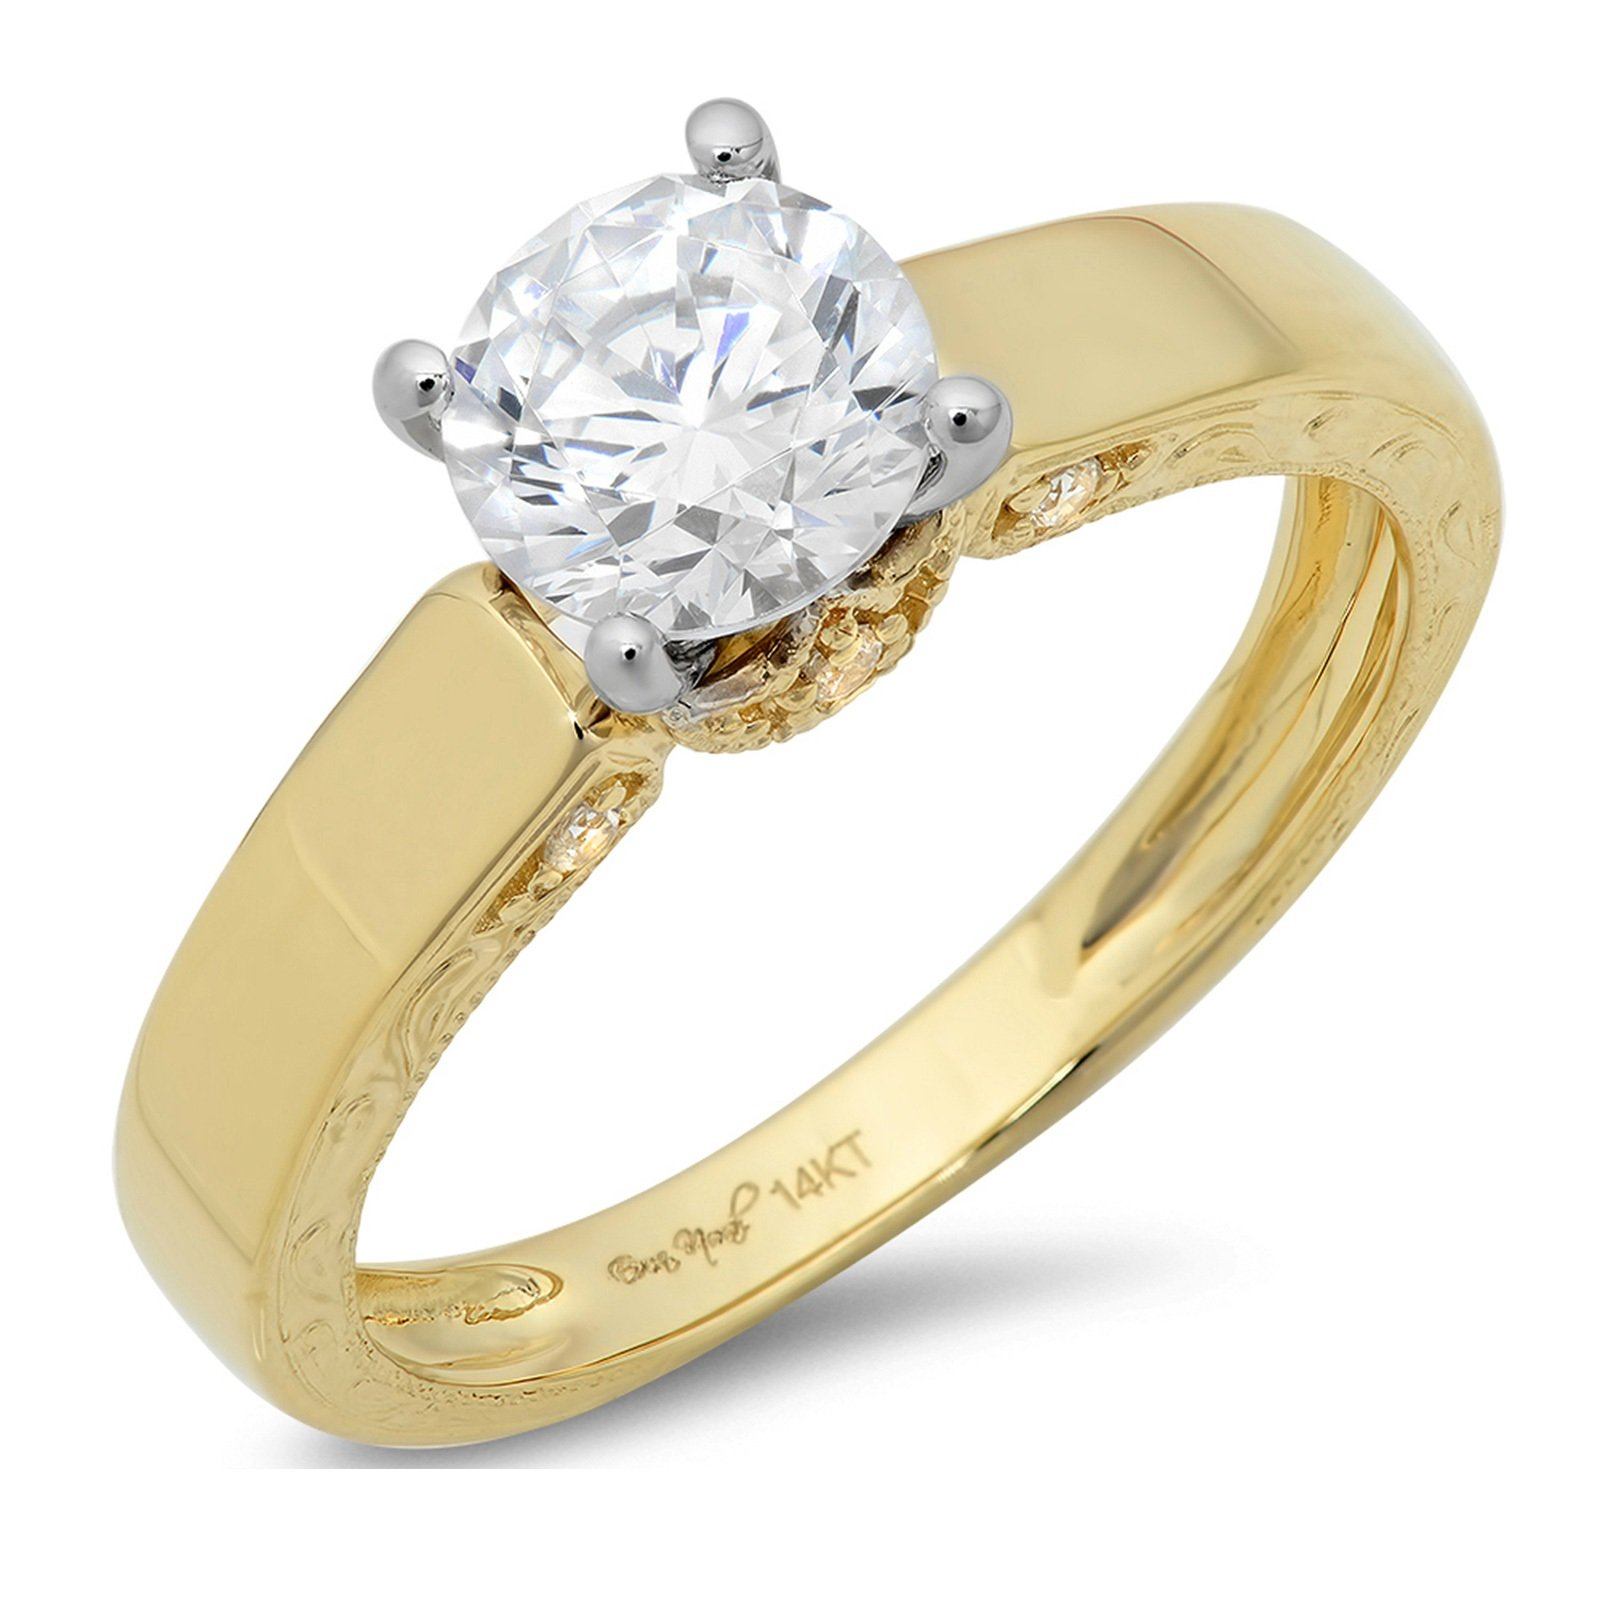 Clara Pucci 1.6 CT Round Cut Promide Bridal Engagement Wedding Ring 14k Yellow White Multi Gold, Size 10.5 by Clara Pucci